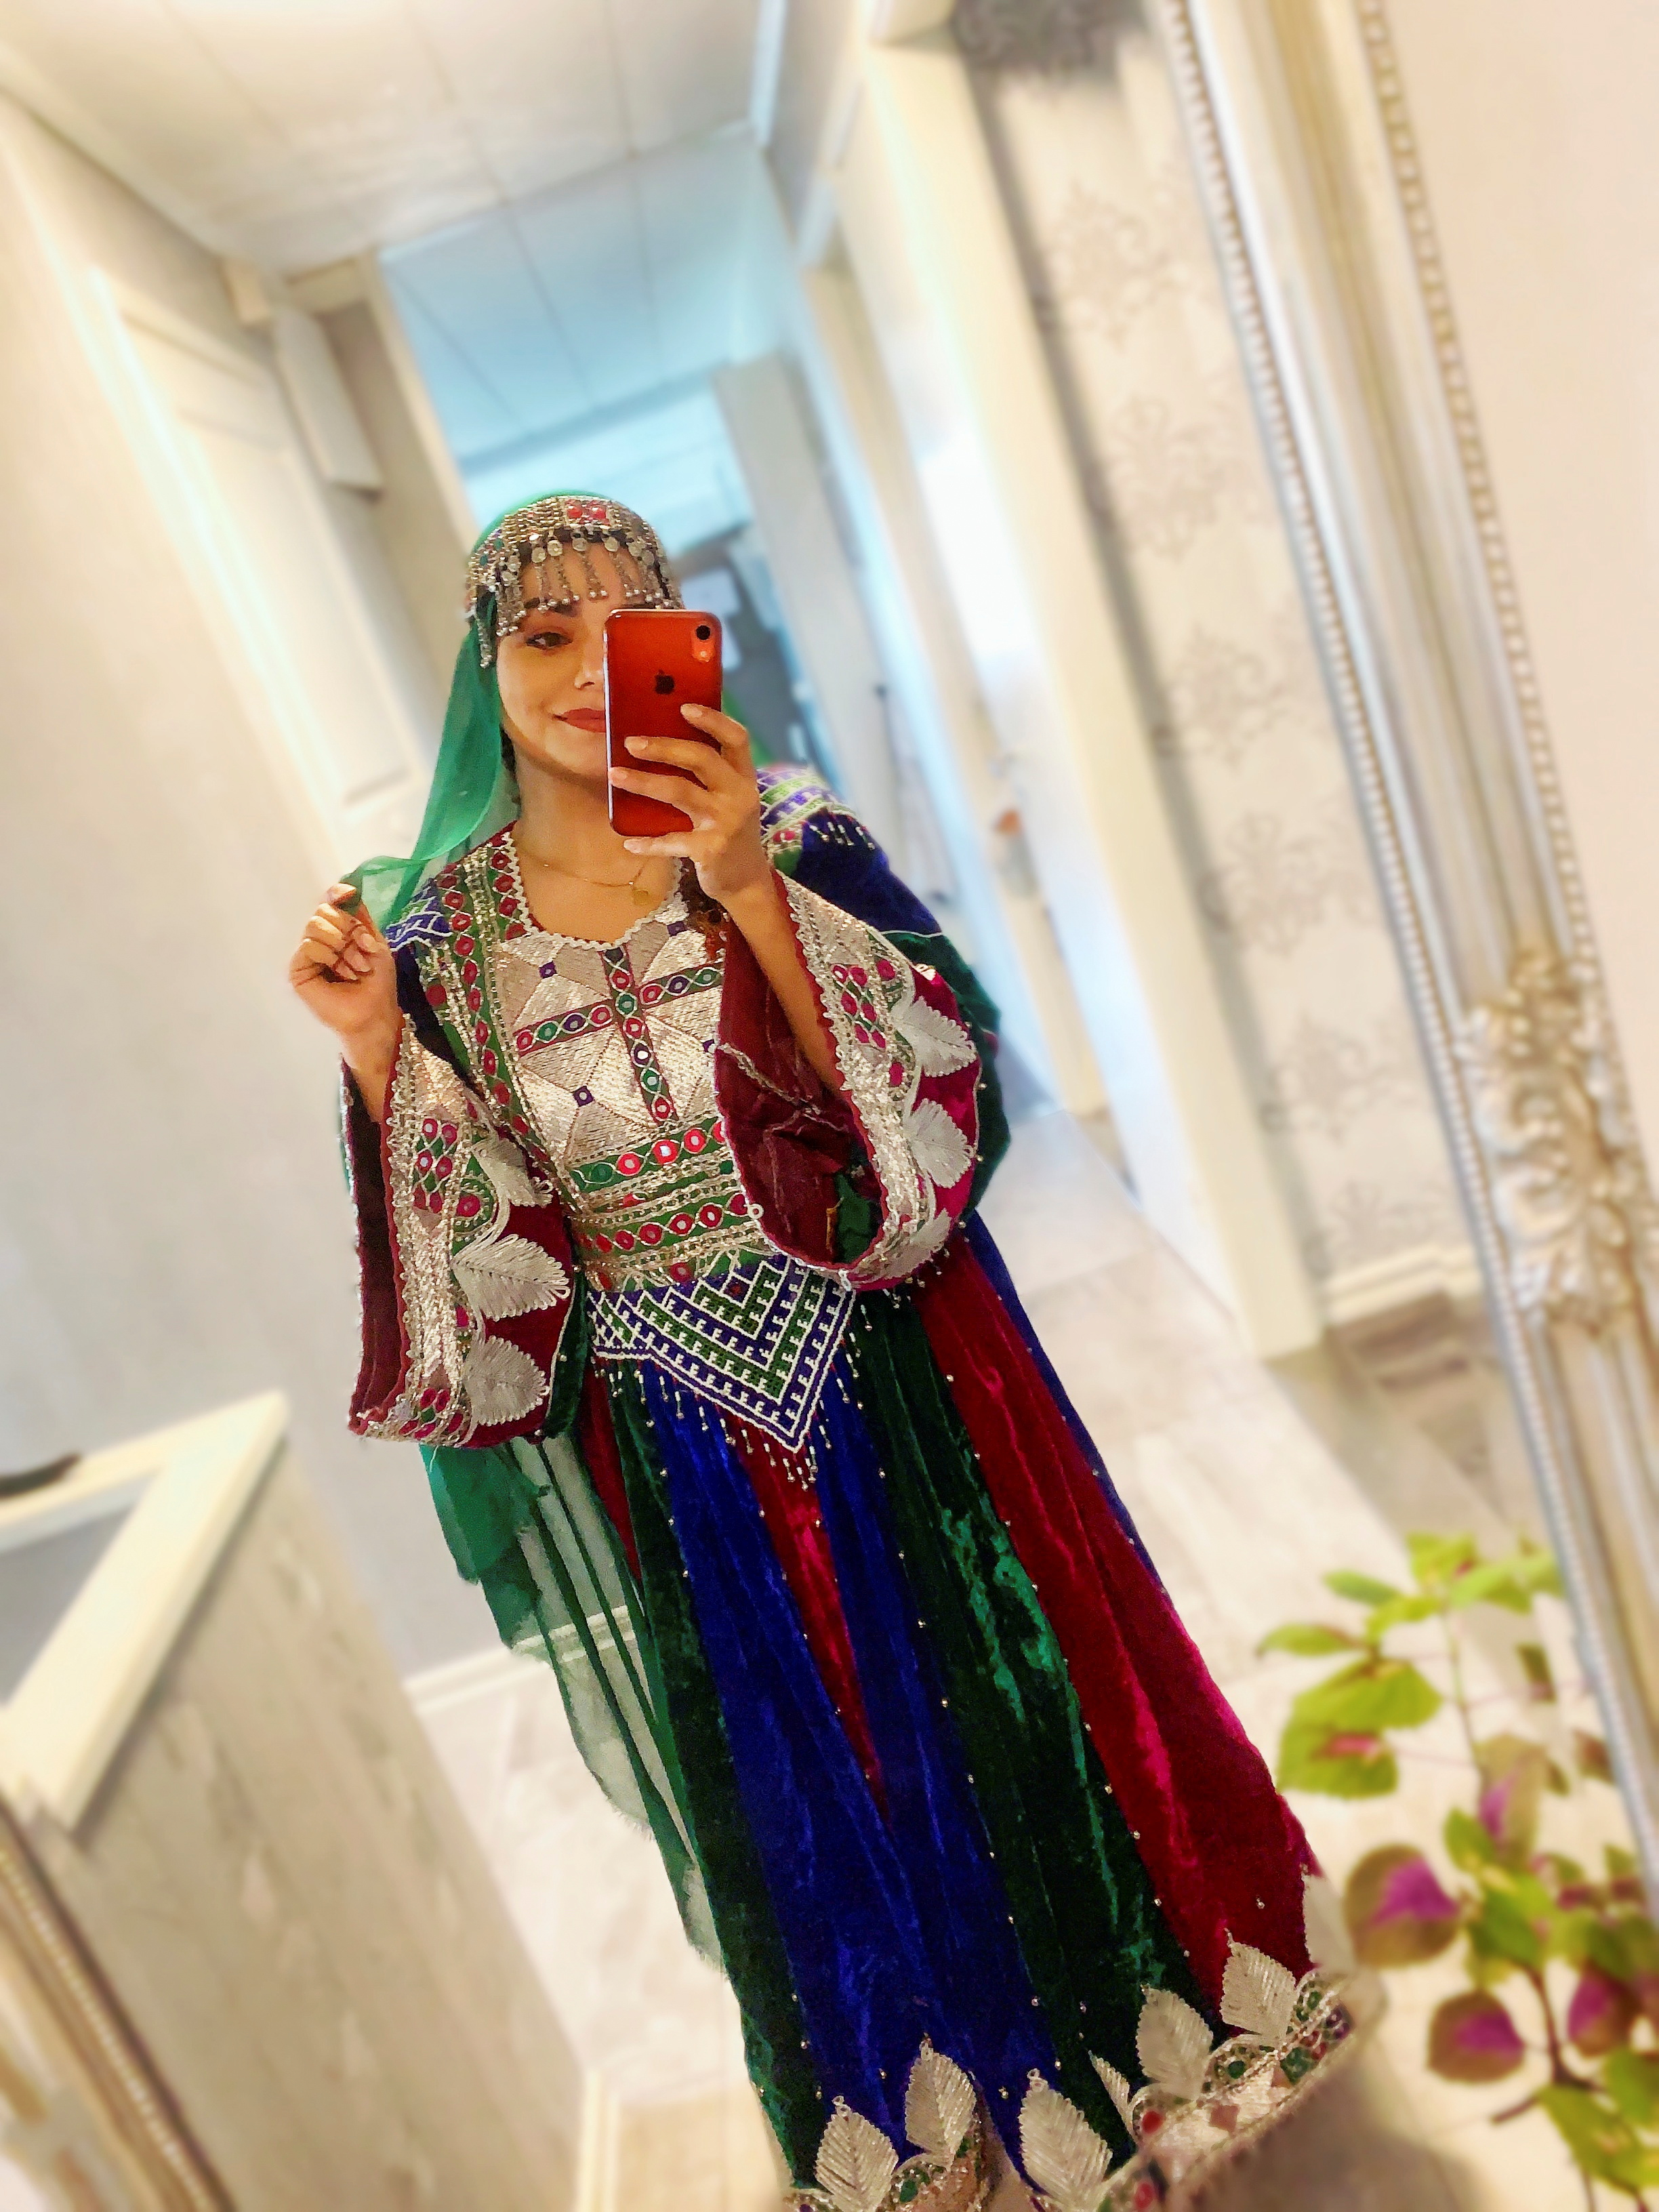 A woman poses in traditional Afghan attire, in Stockholm, Sweden, March 21, 2021, in this picture obtained from social media. Wazhma Sayle/via REUTERS   THIS IMAGE HAS BEEN SUPPLIED BY A THIRD PARTY. MANDATORY CREDIT. NO RESALES. NO ARCHIVES.